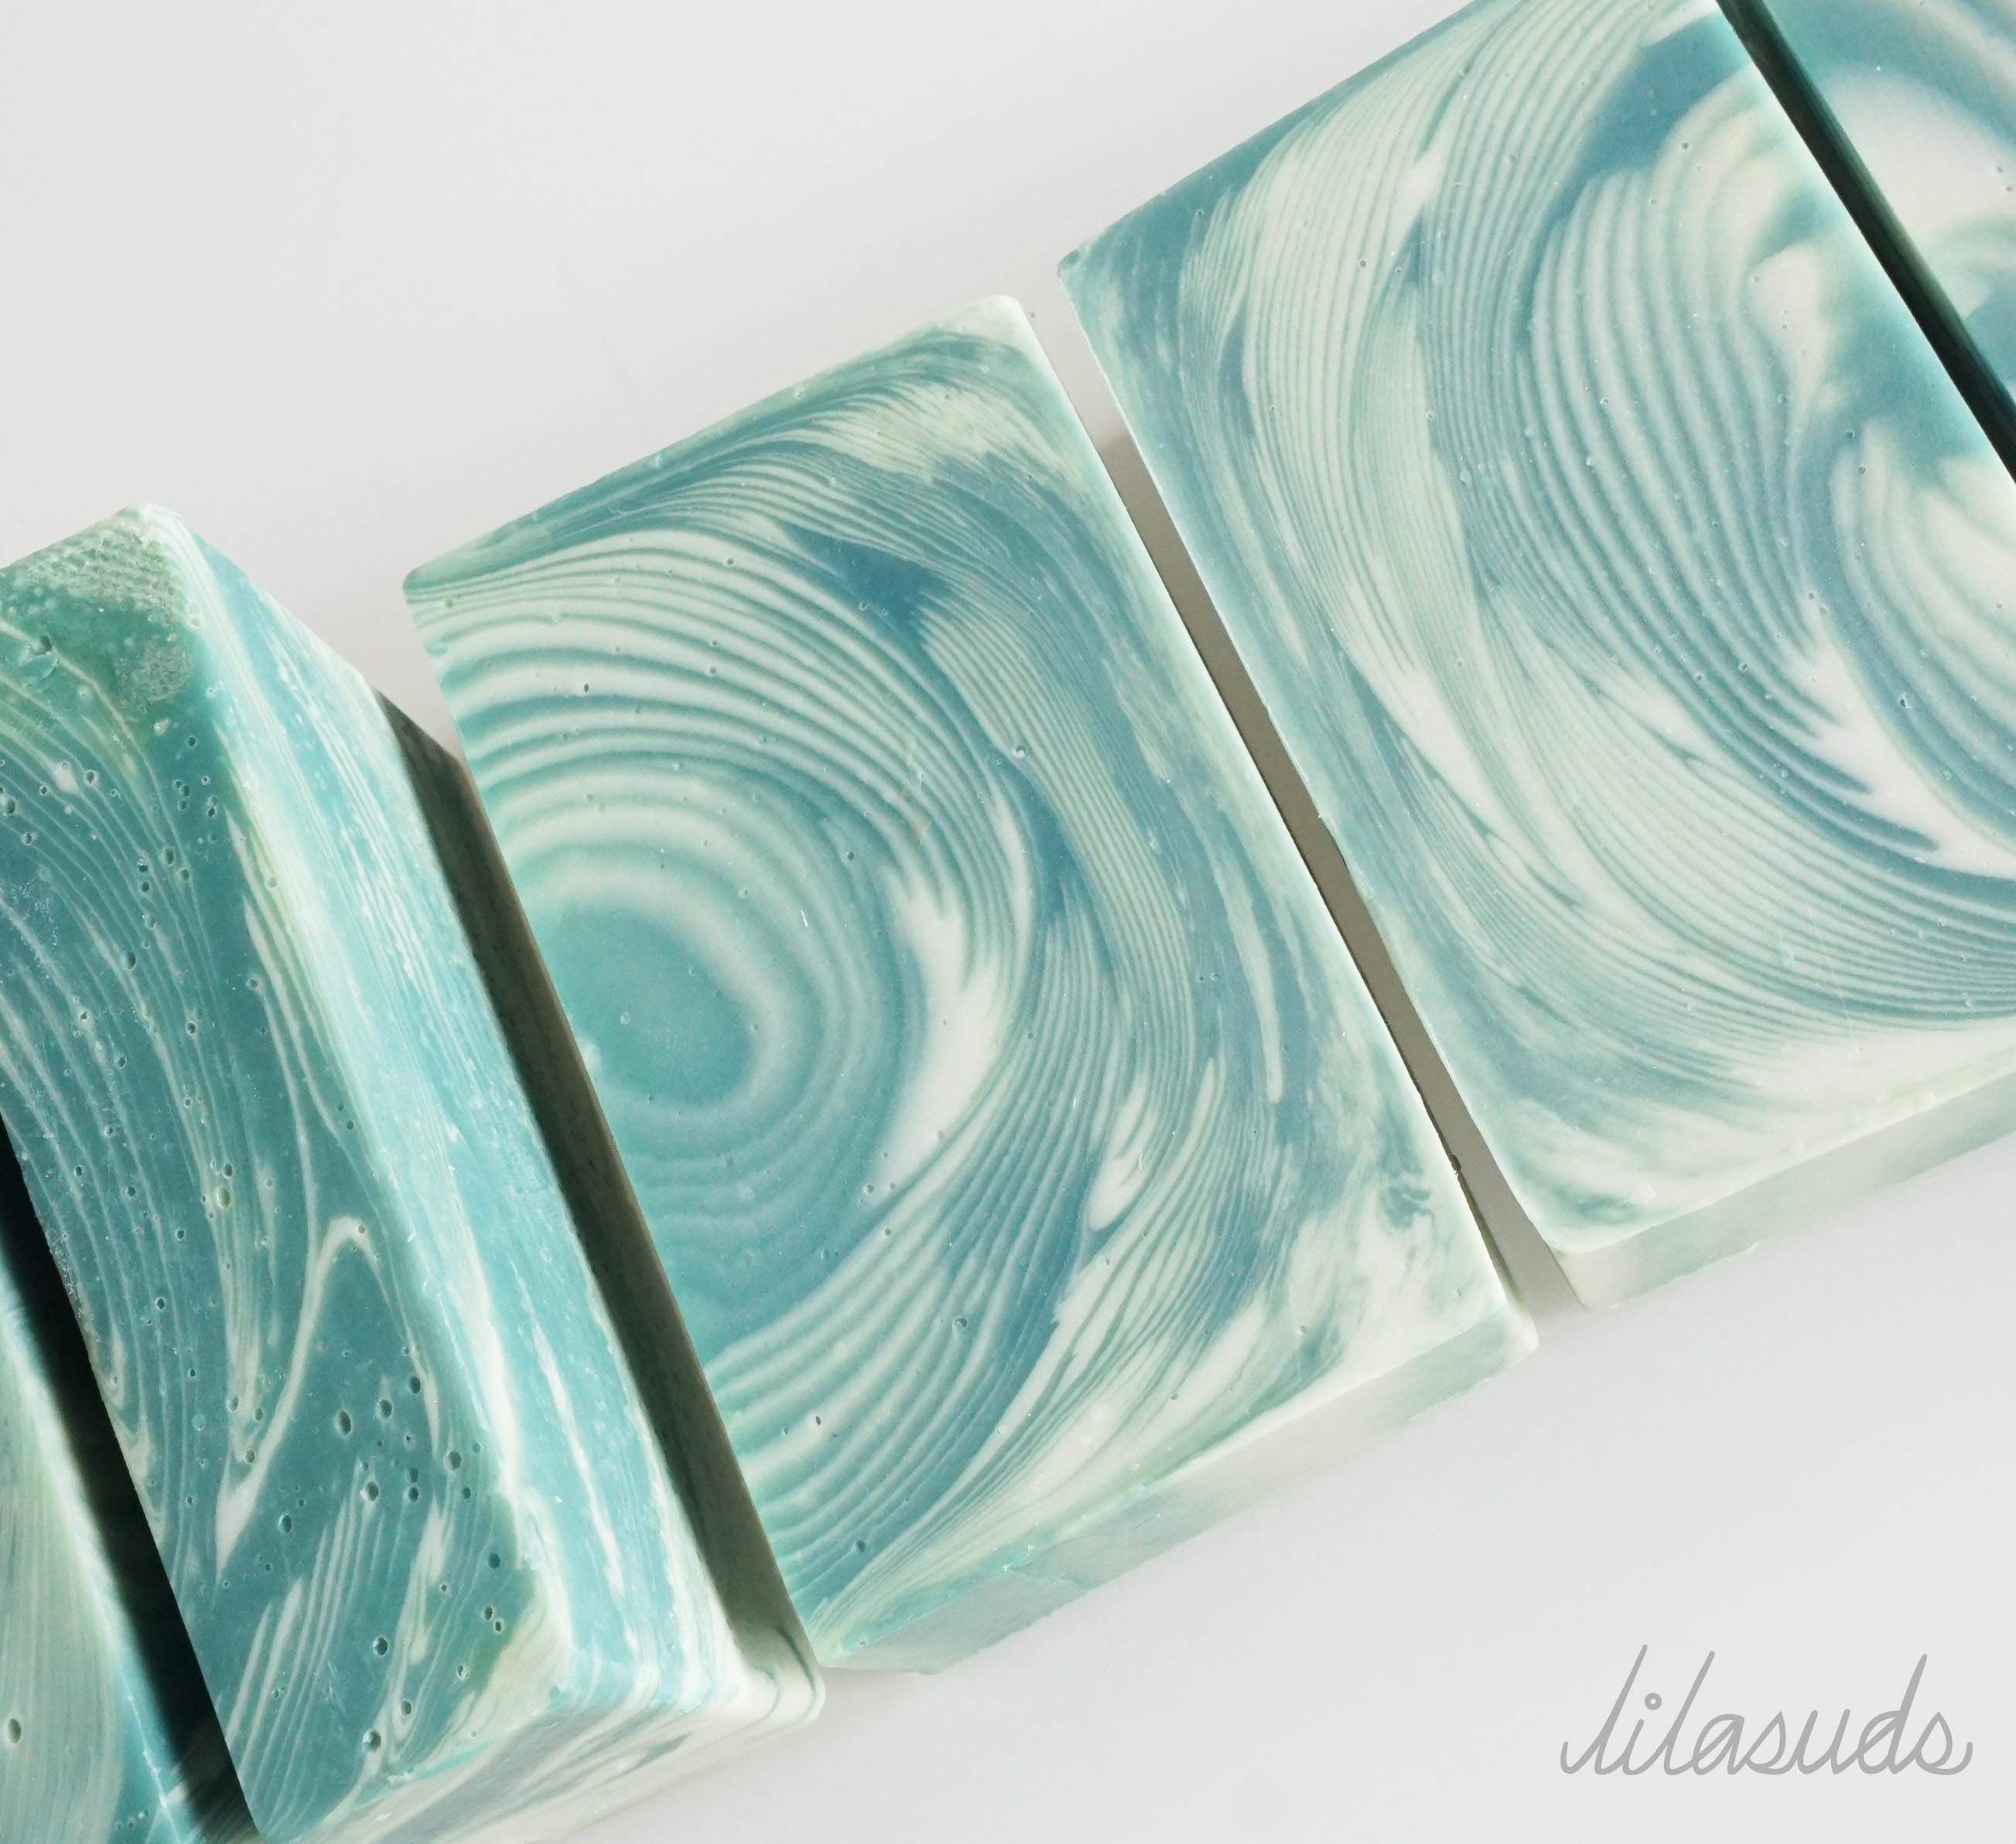 Tranquility • Artisan Soap